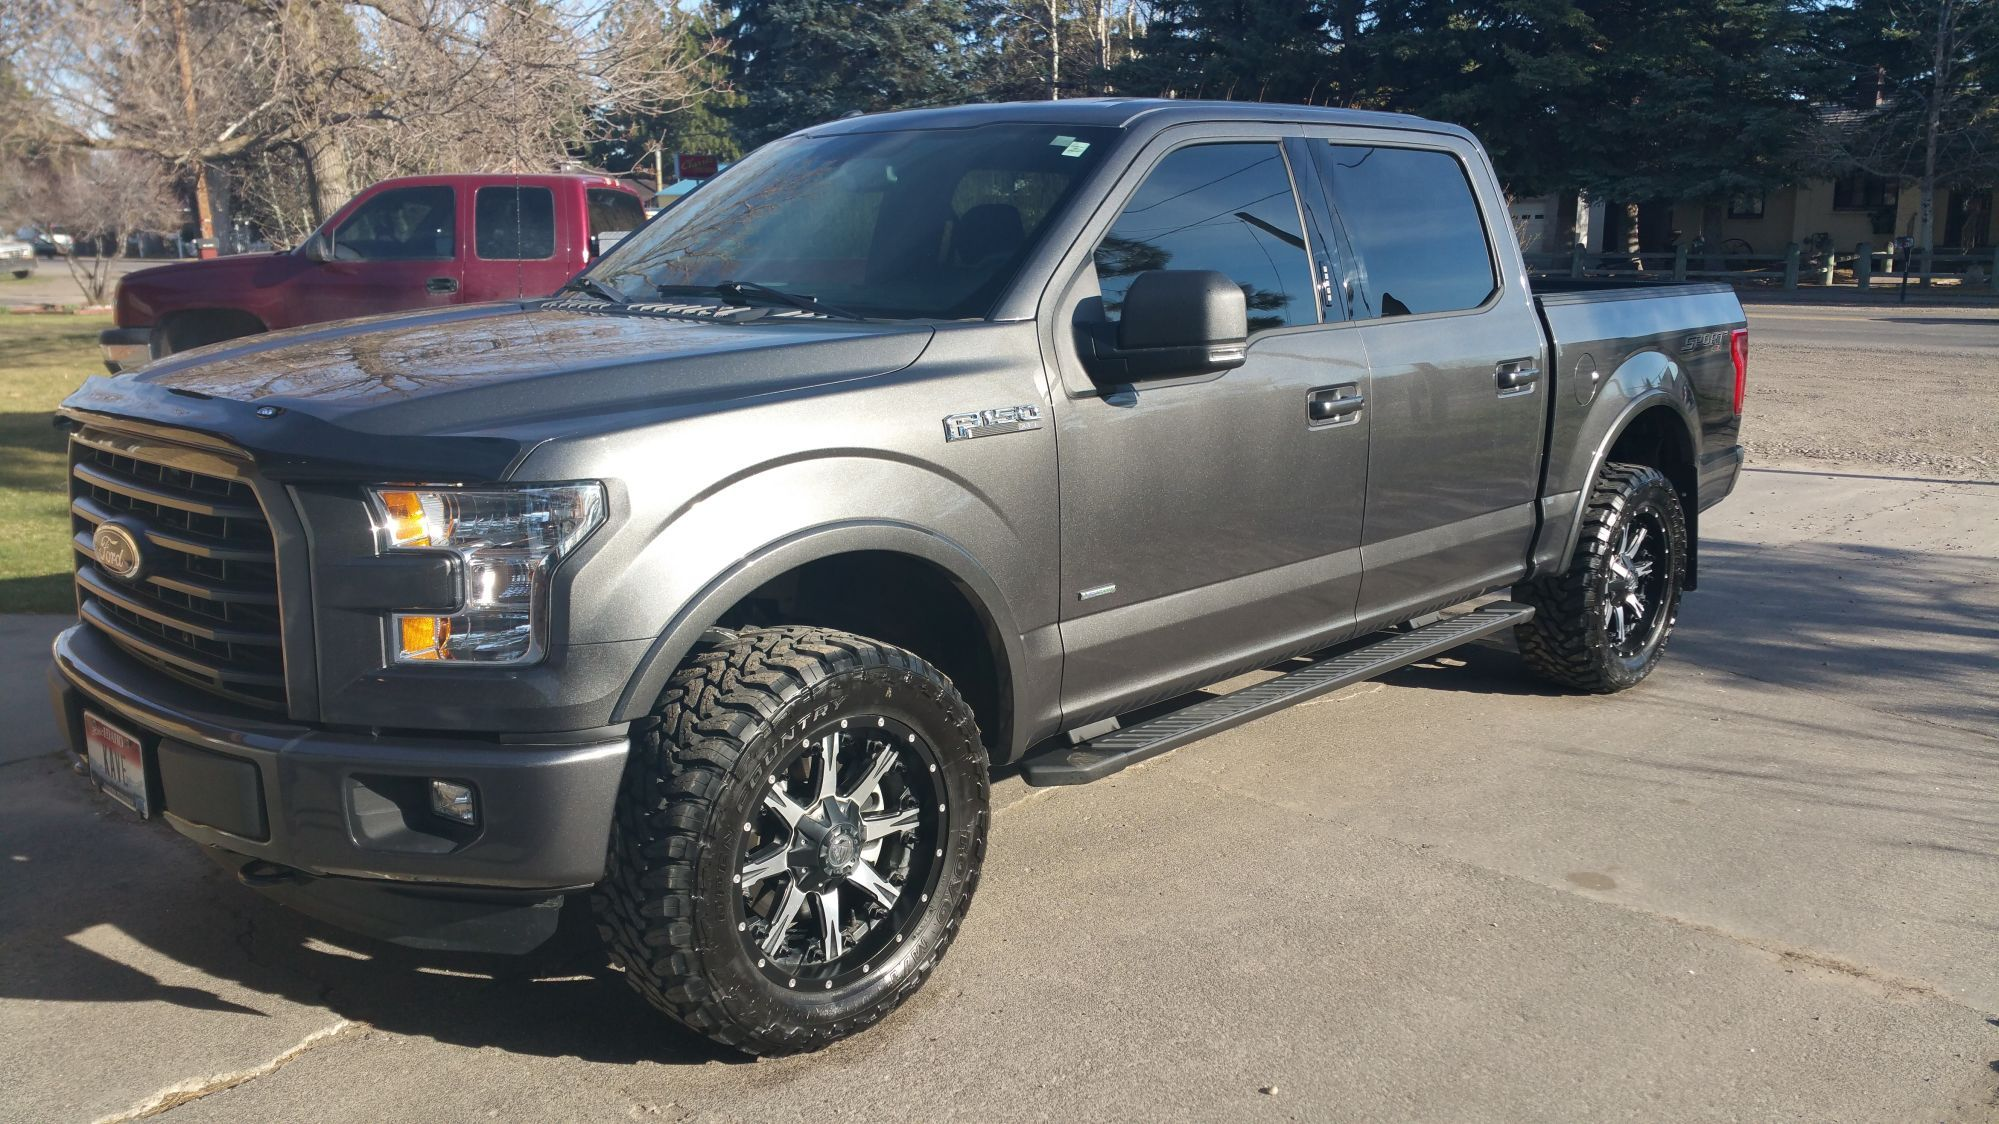 My 2015 Xlt Ford F150 Forum Community Of Ford Truck Fans Ford F150 Ford Trucks F150 Truck Accessories Ford